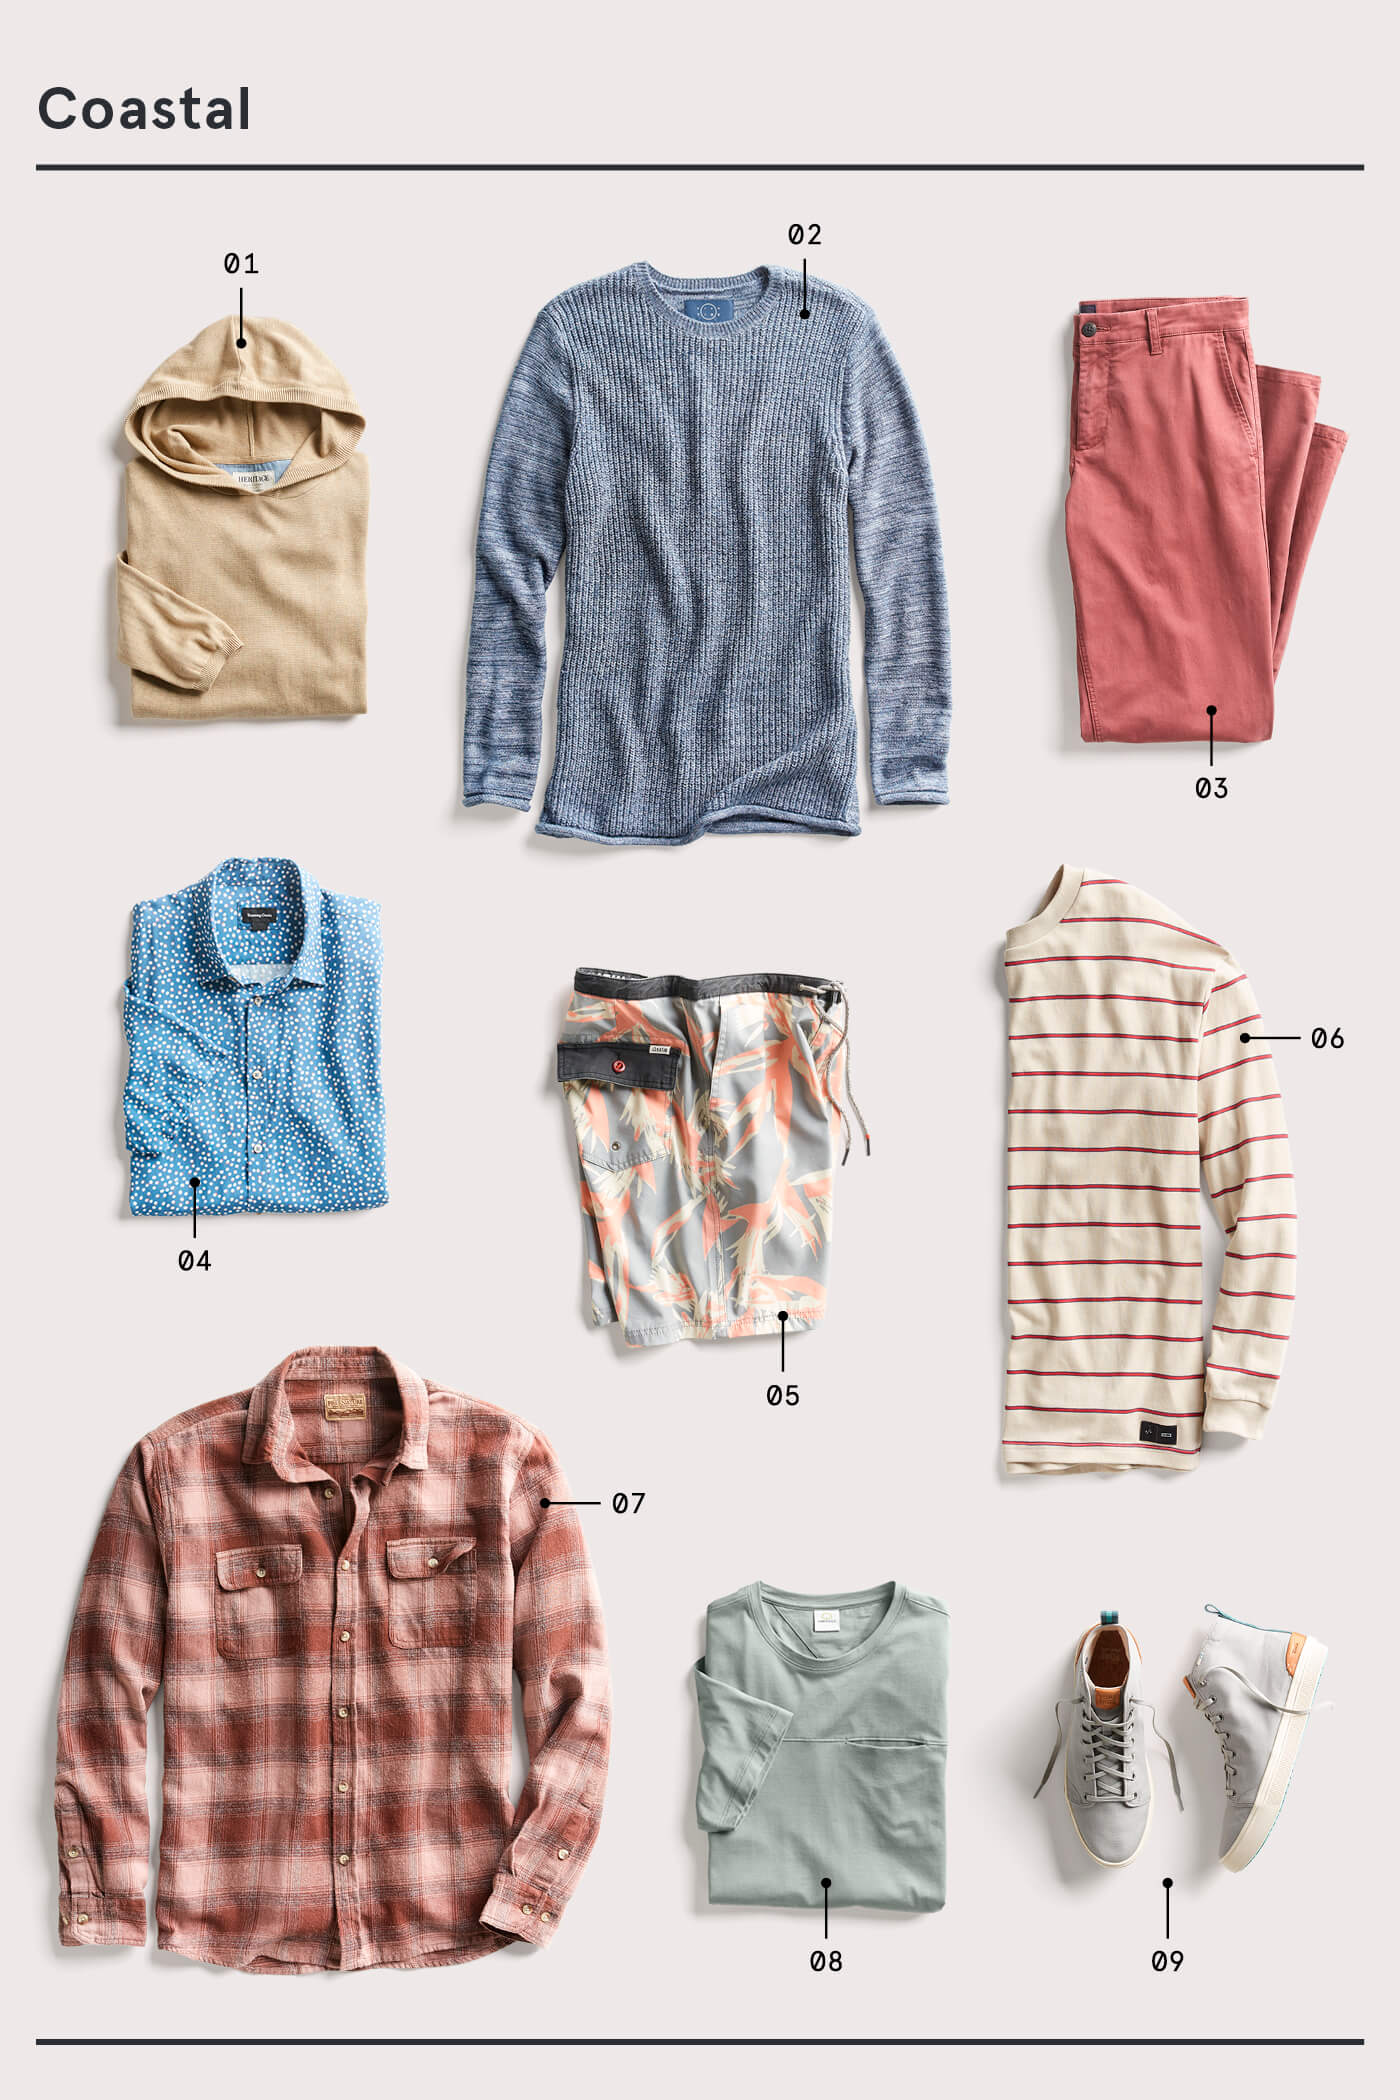 men's coastal style essentials